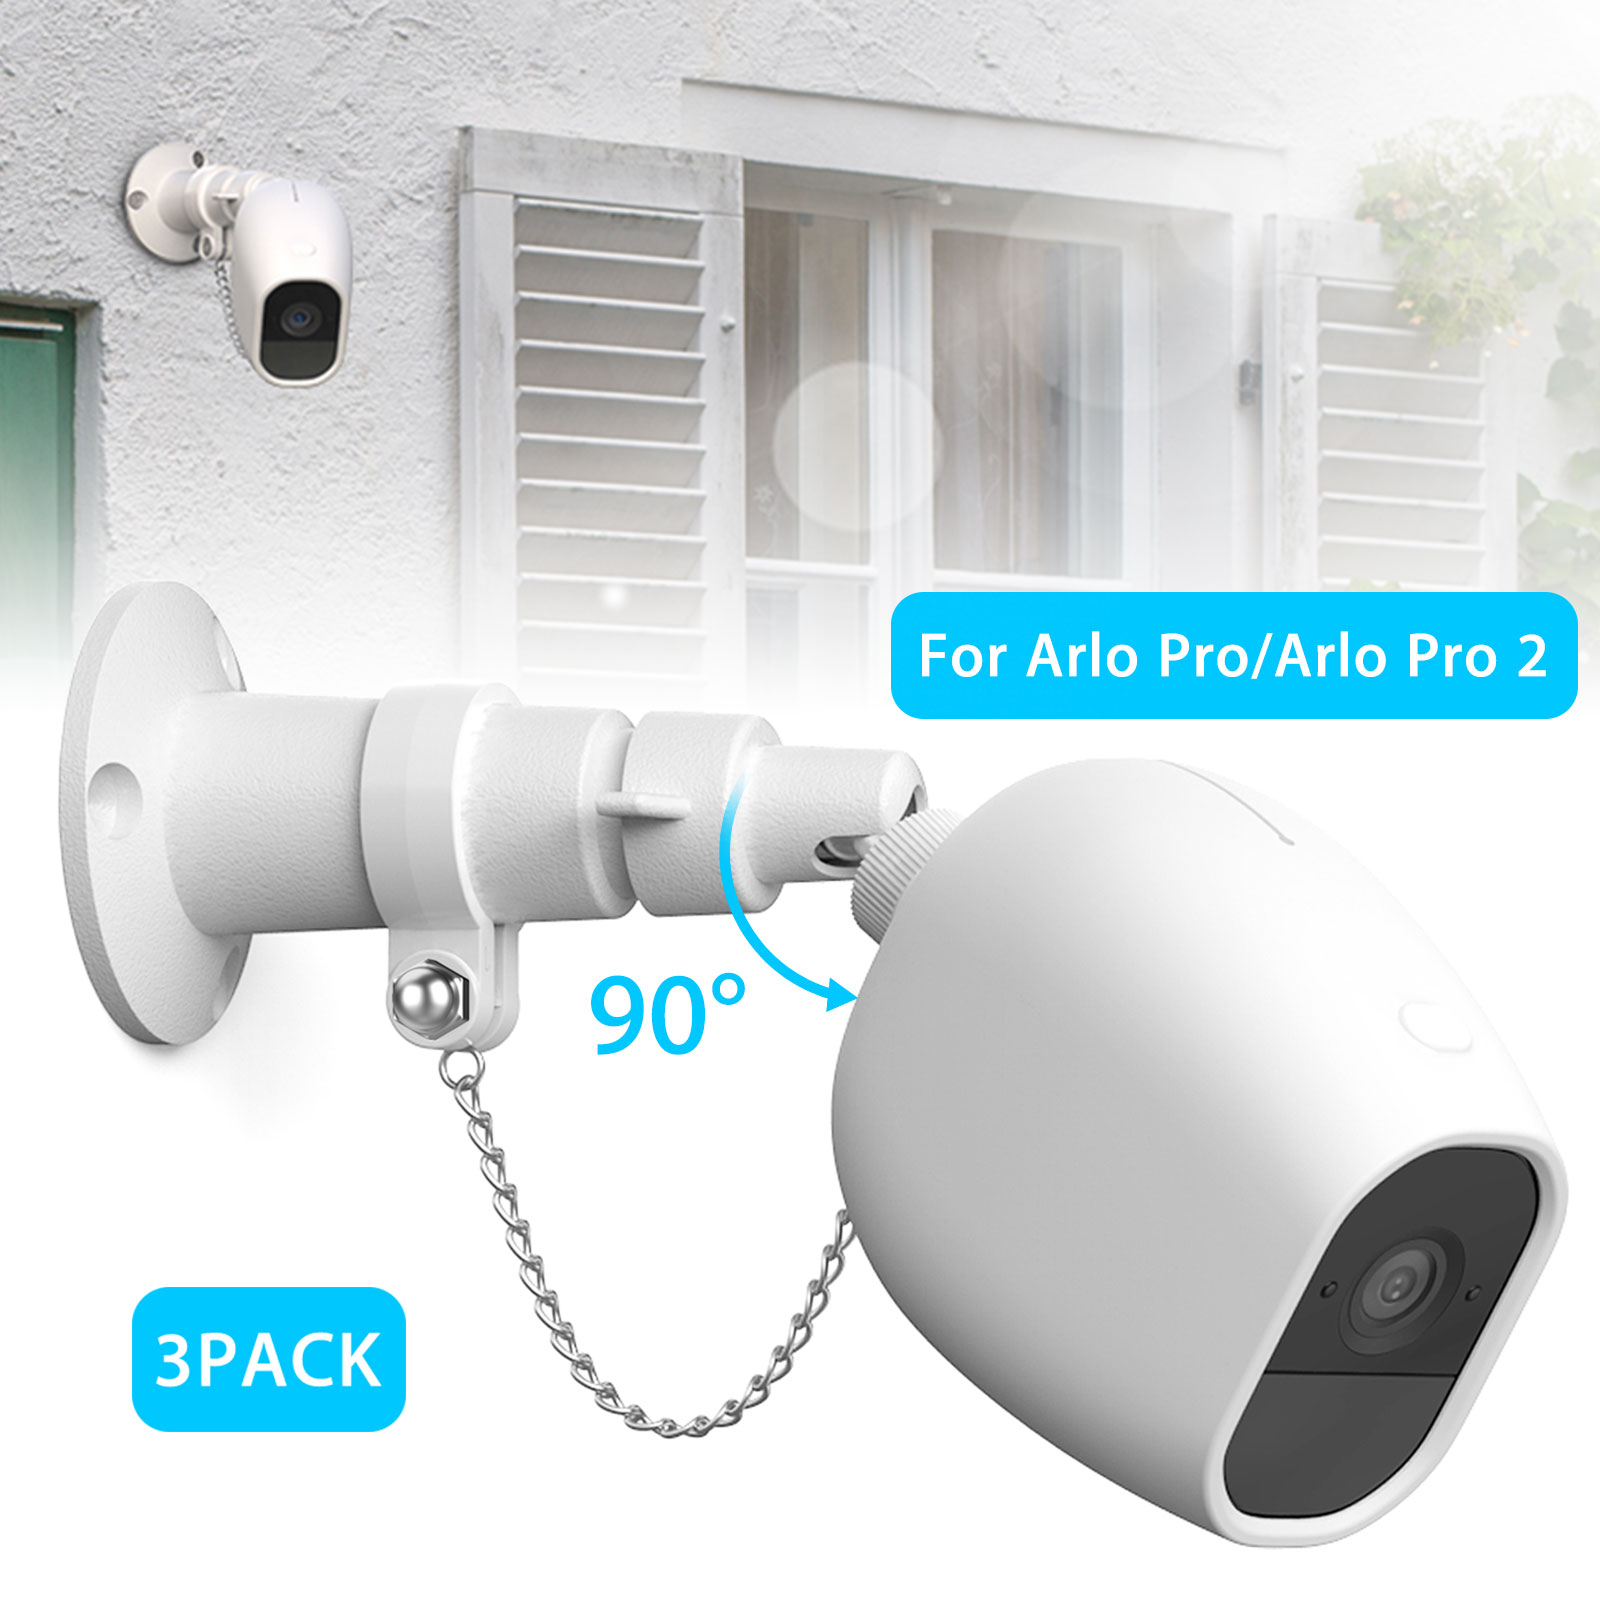 Anti-Theft-Security-Chain-for-Arlo-Pro-Arlo-Pro-2-Wall-Mount-Silicone-1-2-3pcs thumbnail 12